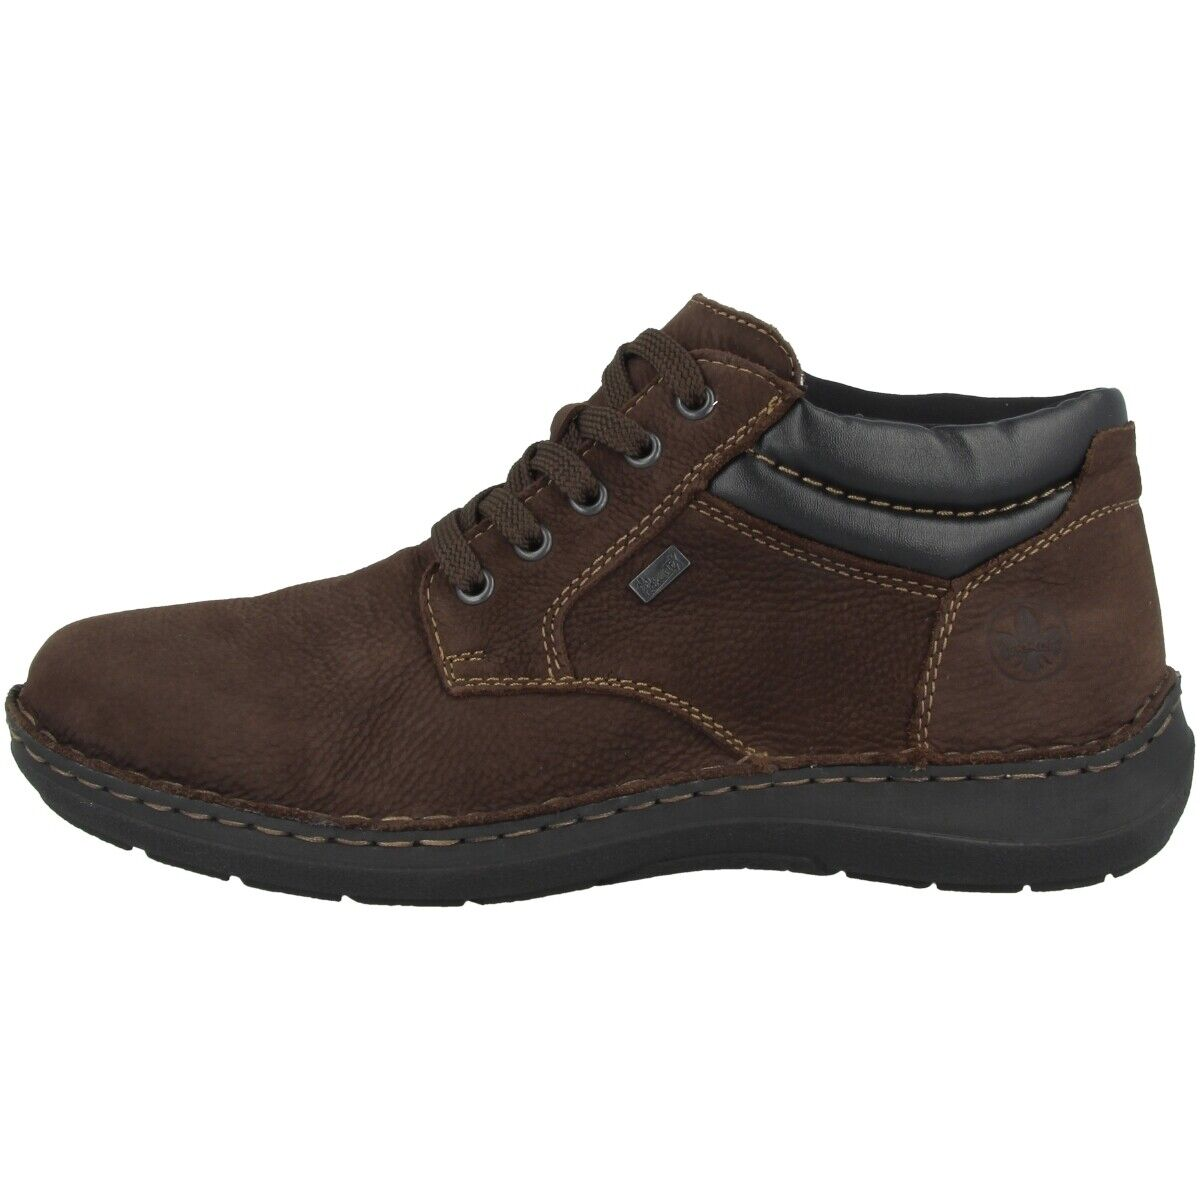 Rieker Paso-Fino Men's shoes Anti-stress Boots Ankle Boots Lace up 03011-25